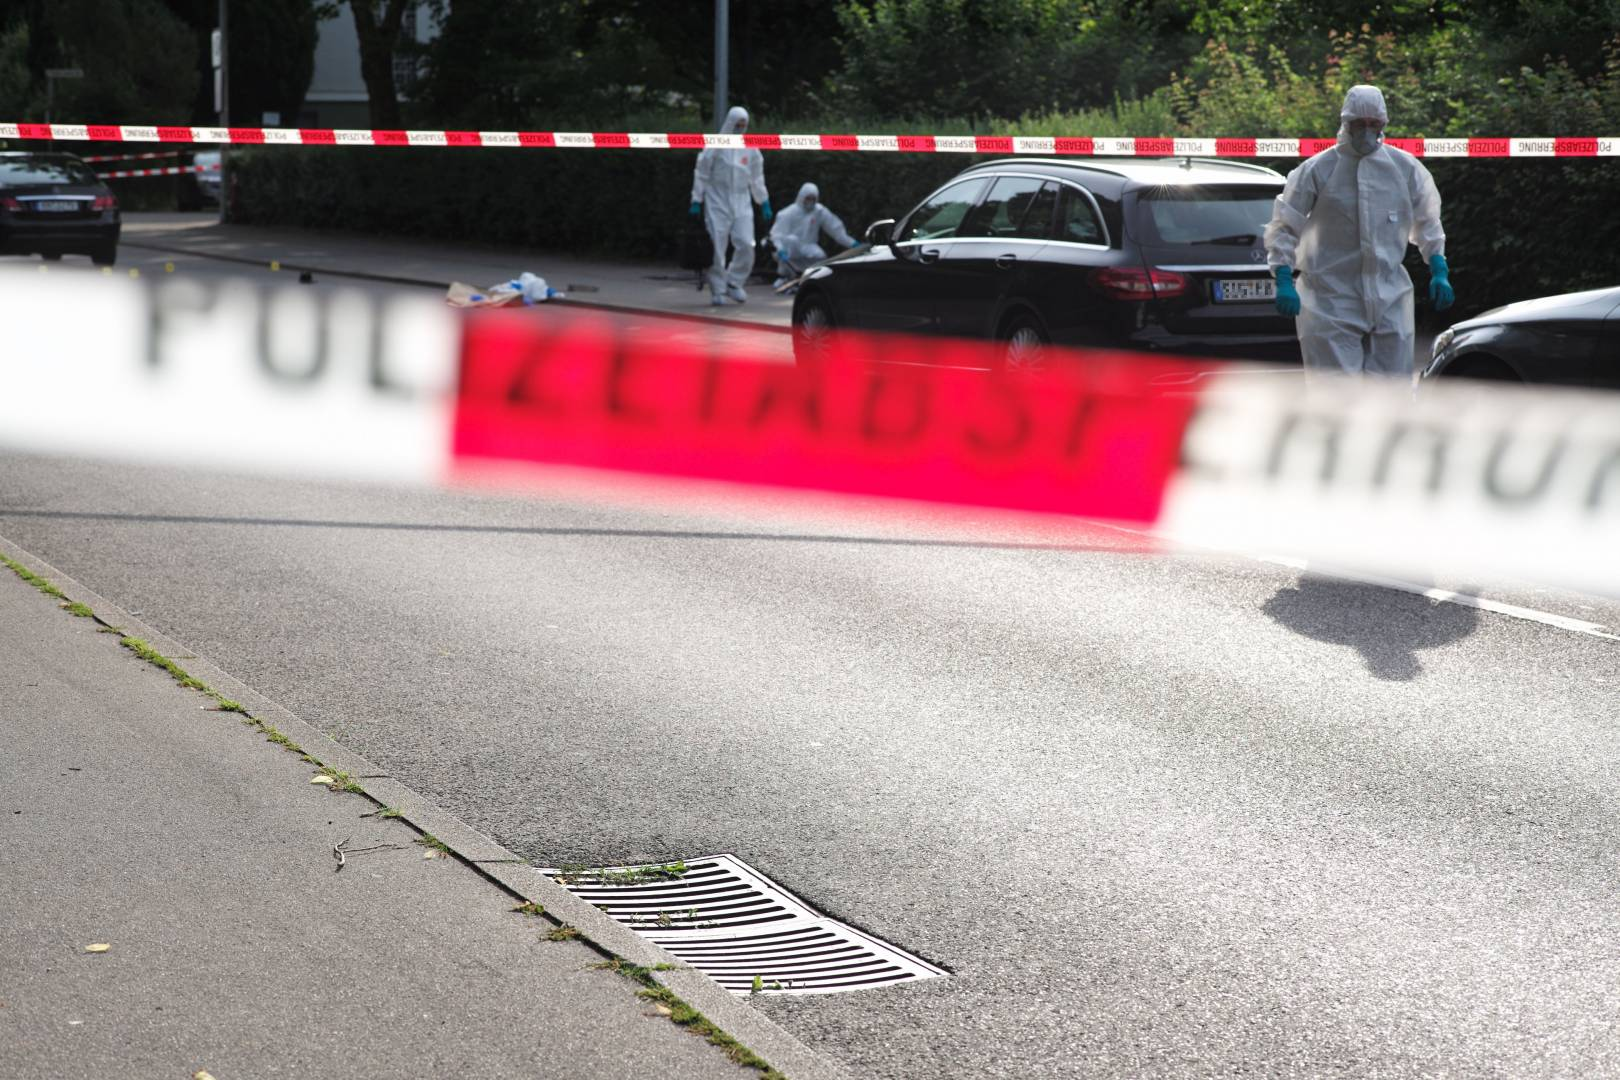 Crime scene in the otherwise so tranquil city of Constance. Police officers investigate the stabbing of a taxi driver. (Leica M 262, Summarit-M 75, slightly cropped)